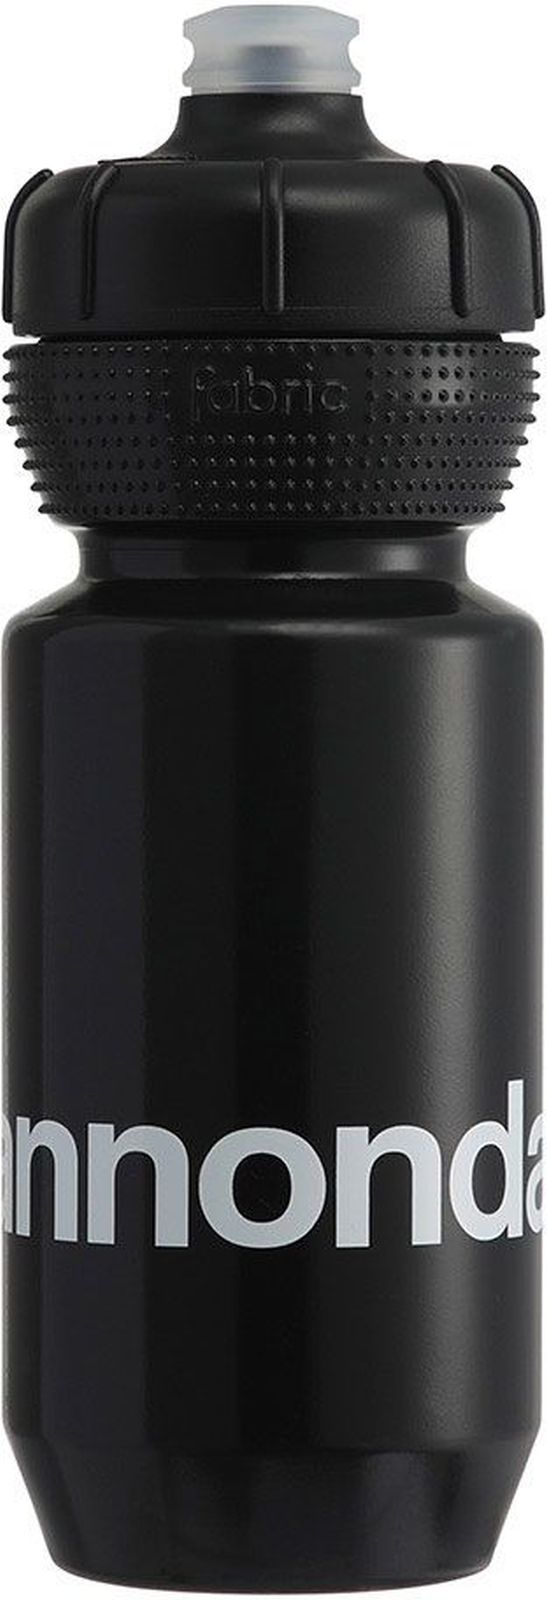 Cannondale Logo Gripper Bottle 600 ml - black/white uni